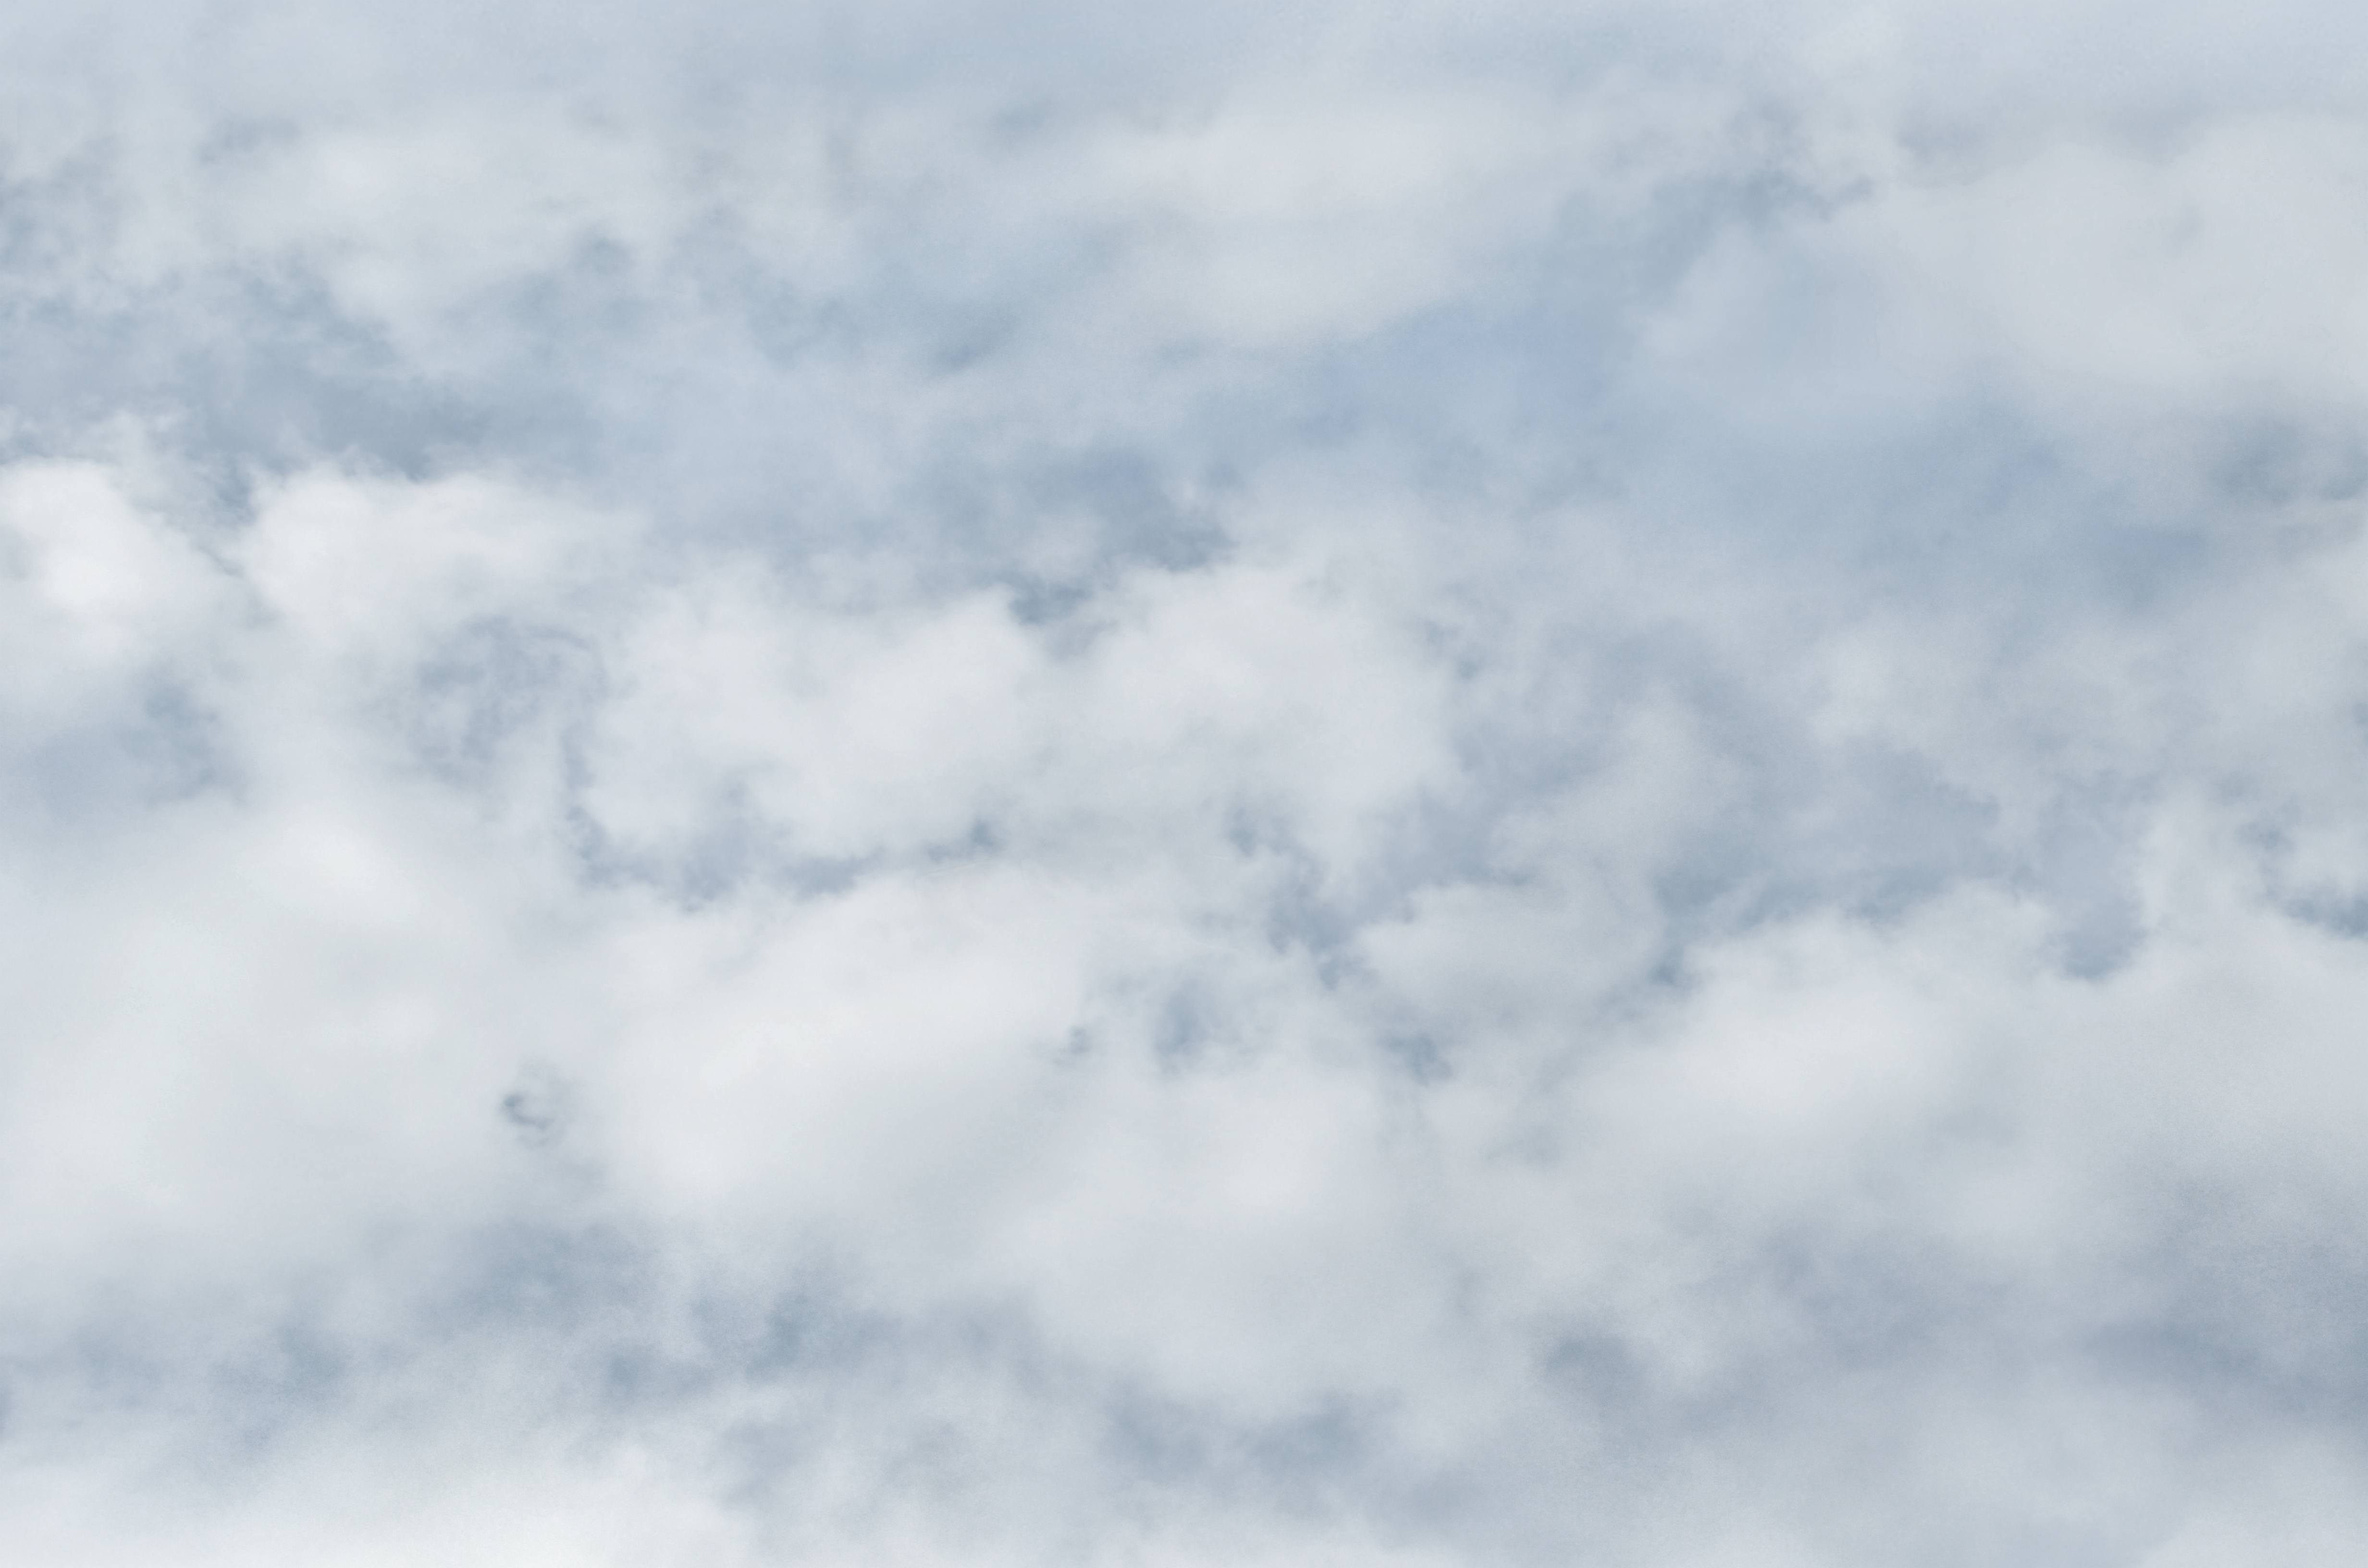 Png effects for photoshop. Atmospheric cloud elements stock